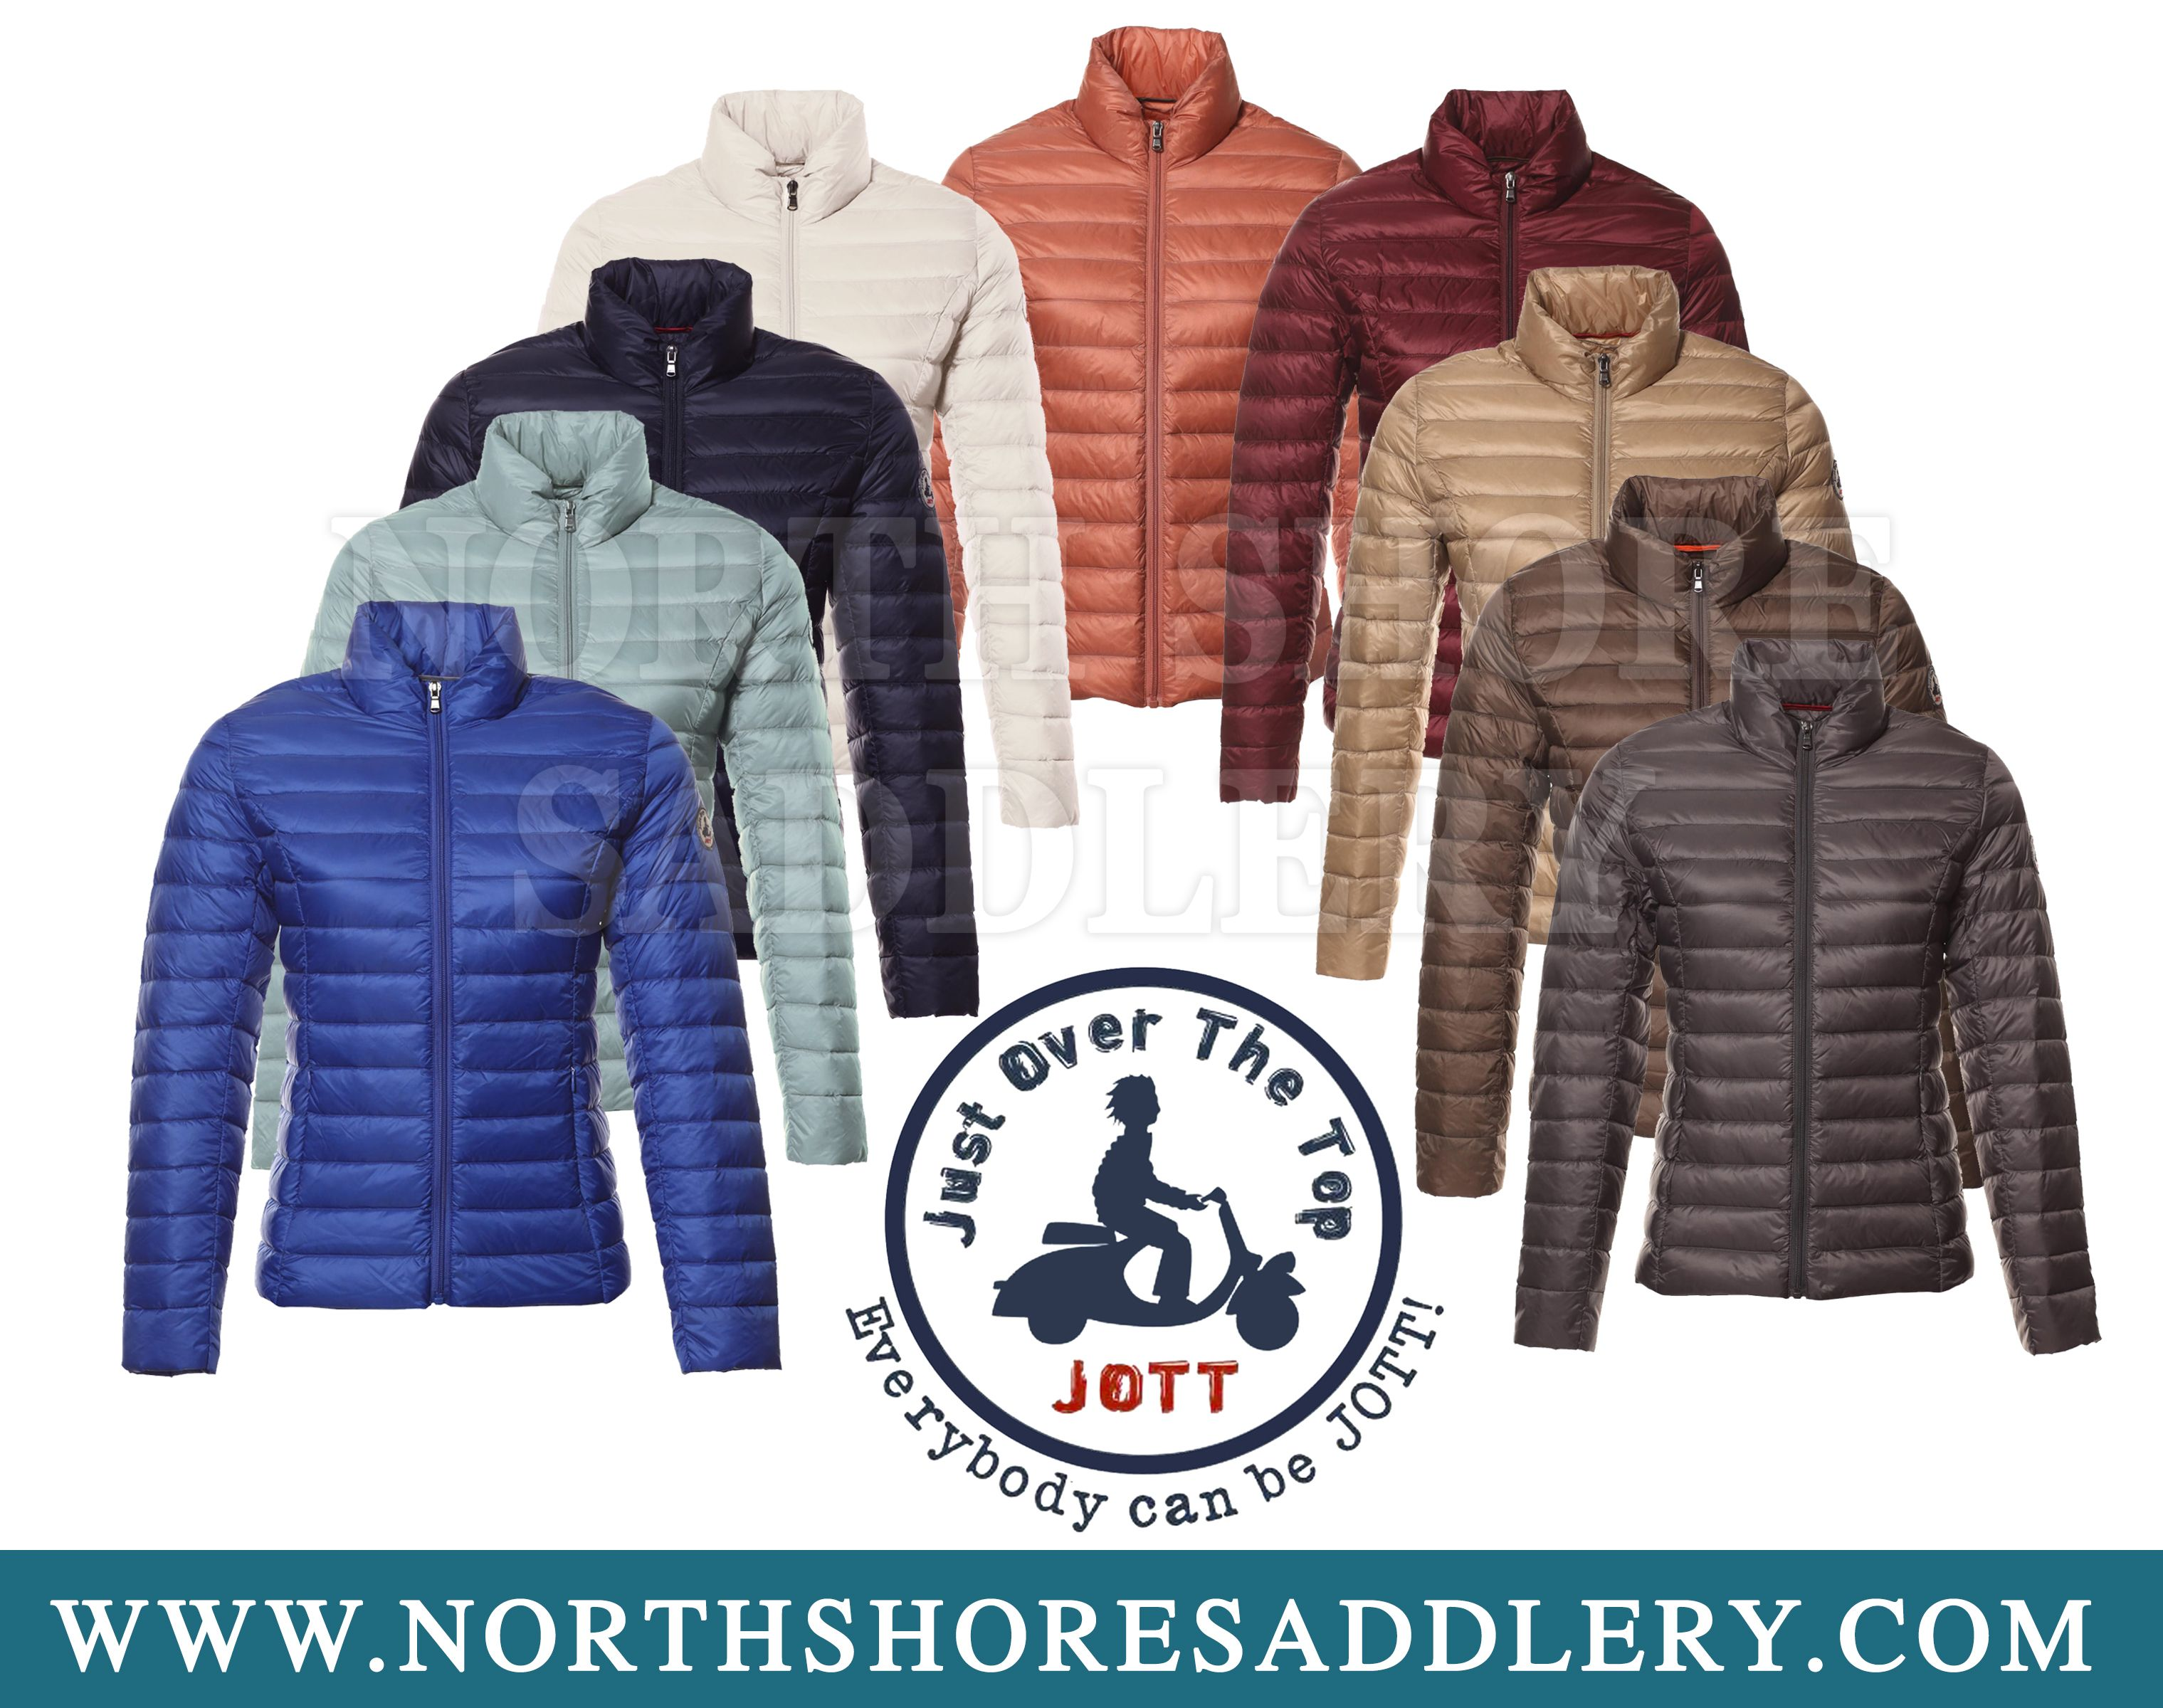 JUST IN! The JOTT - Just Over The Top CHA Jackets! The JOTT CHA is ...